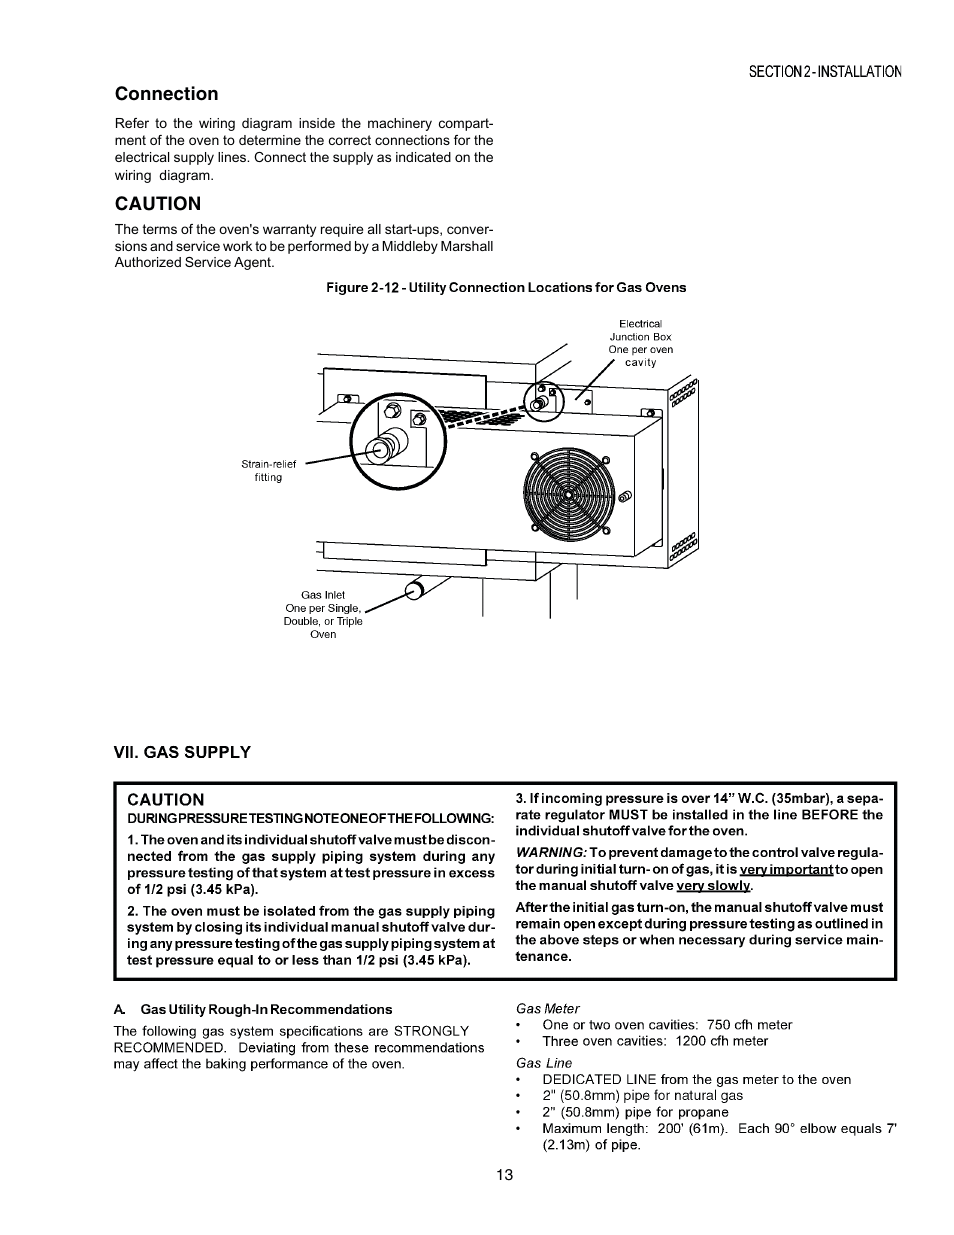 Middleby Marshall Ps770g Gas User Manual Page 13 24 Ups Connection Wiring Diagram